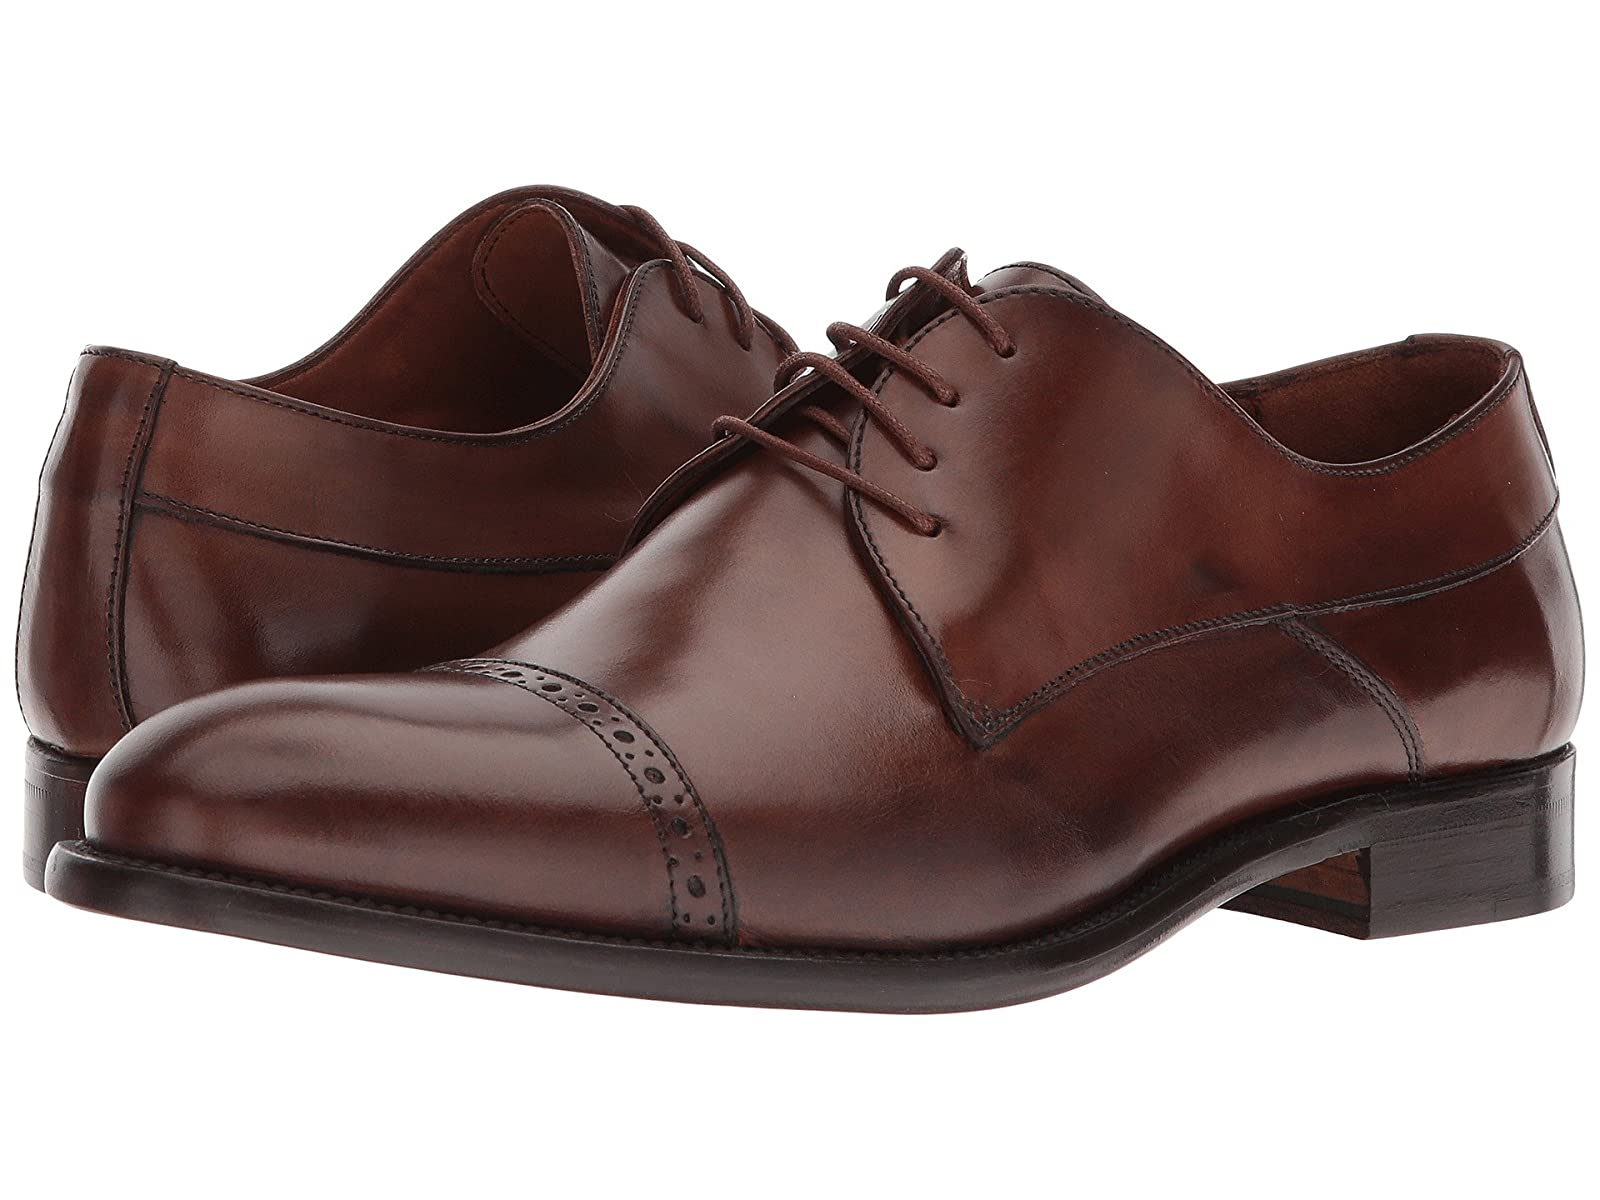 Massimo Matteo 4-Eye Cap Toe 18Atmospheric grades have affordable shoes